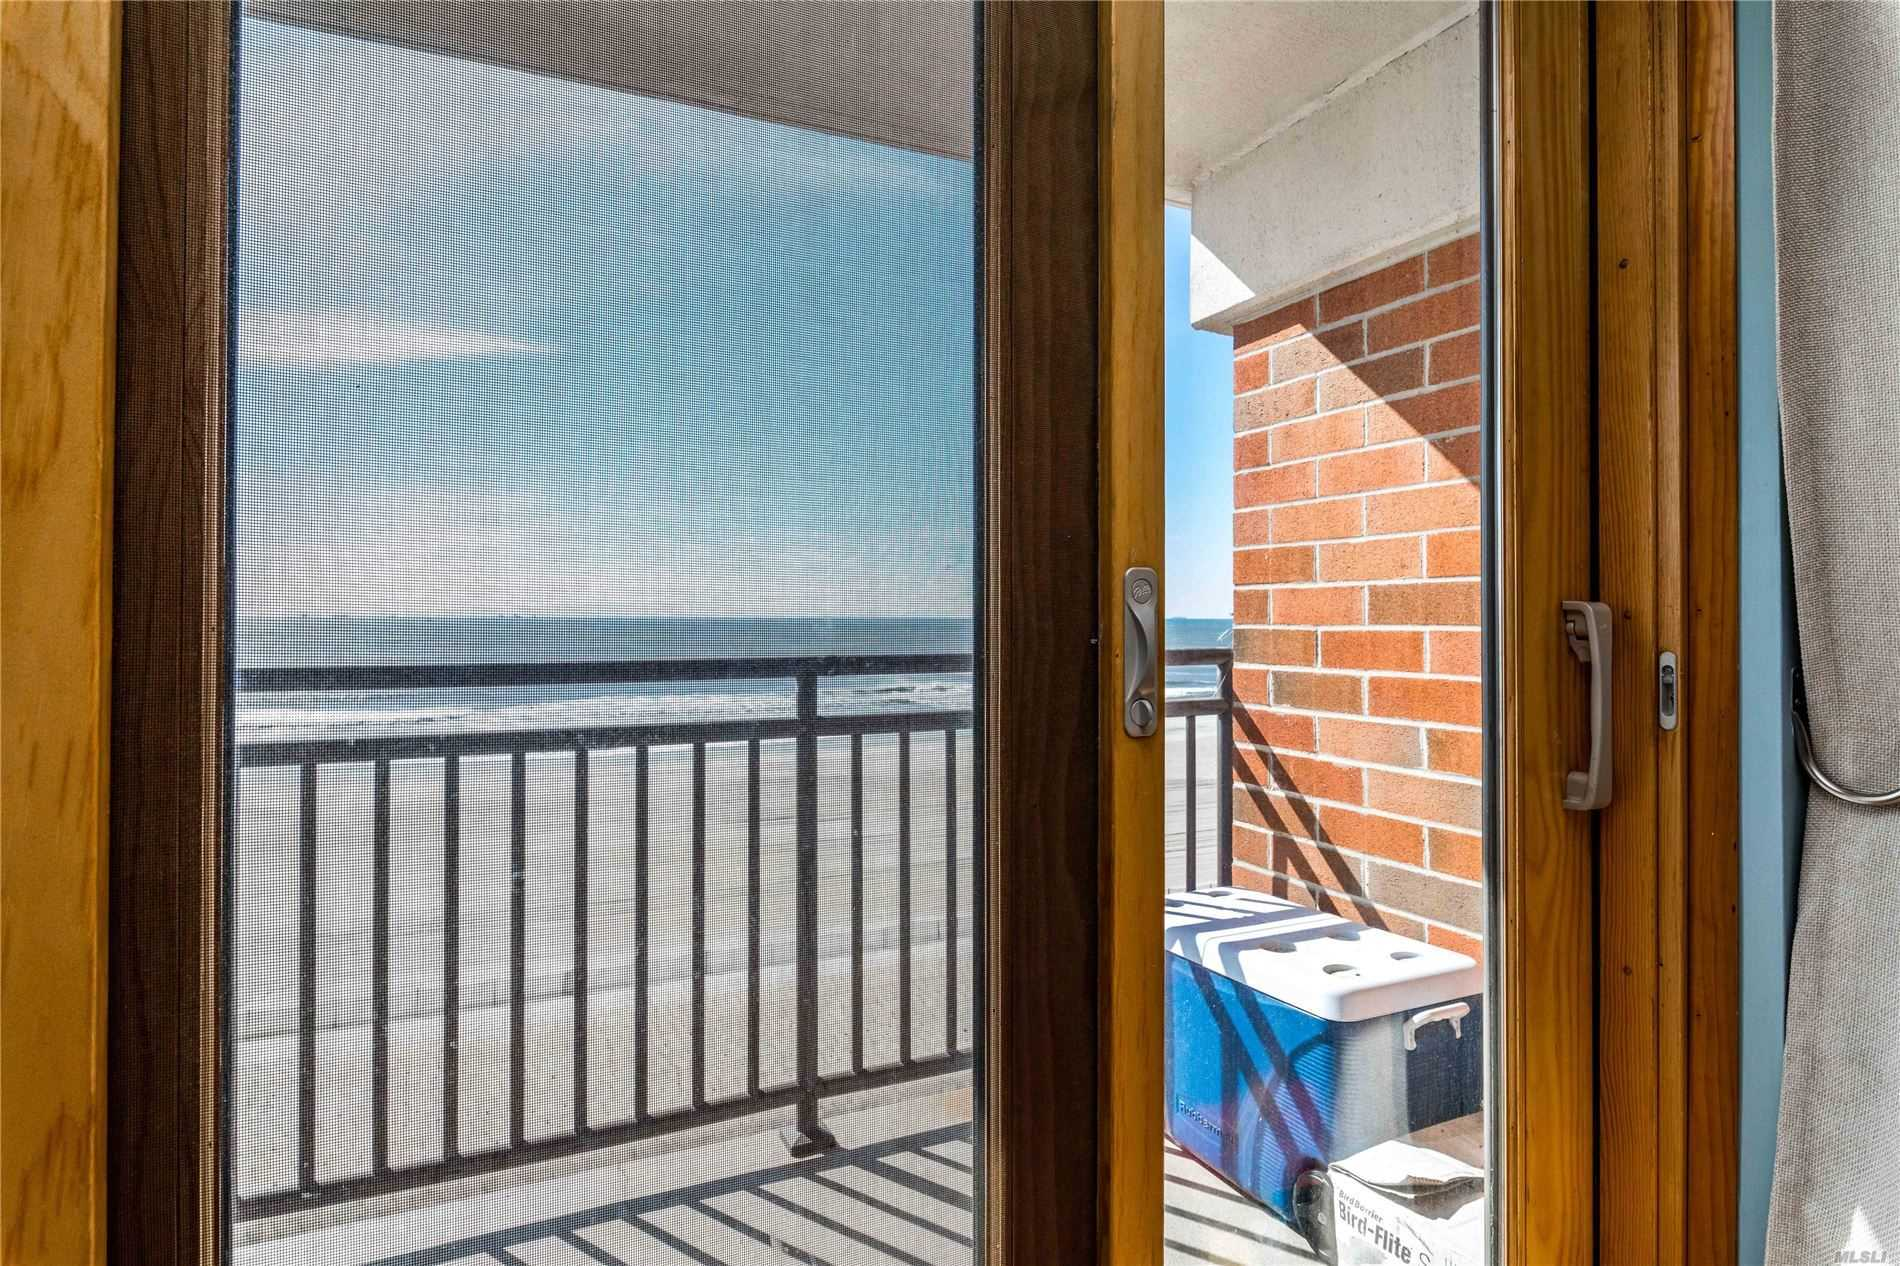 Property for sale at 220 W Broadway # 602, Long Beach NY 11561, Long Beach,  New York 11561